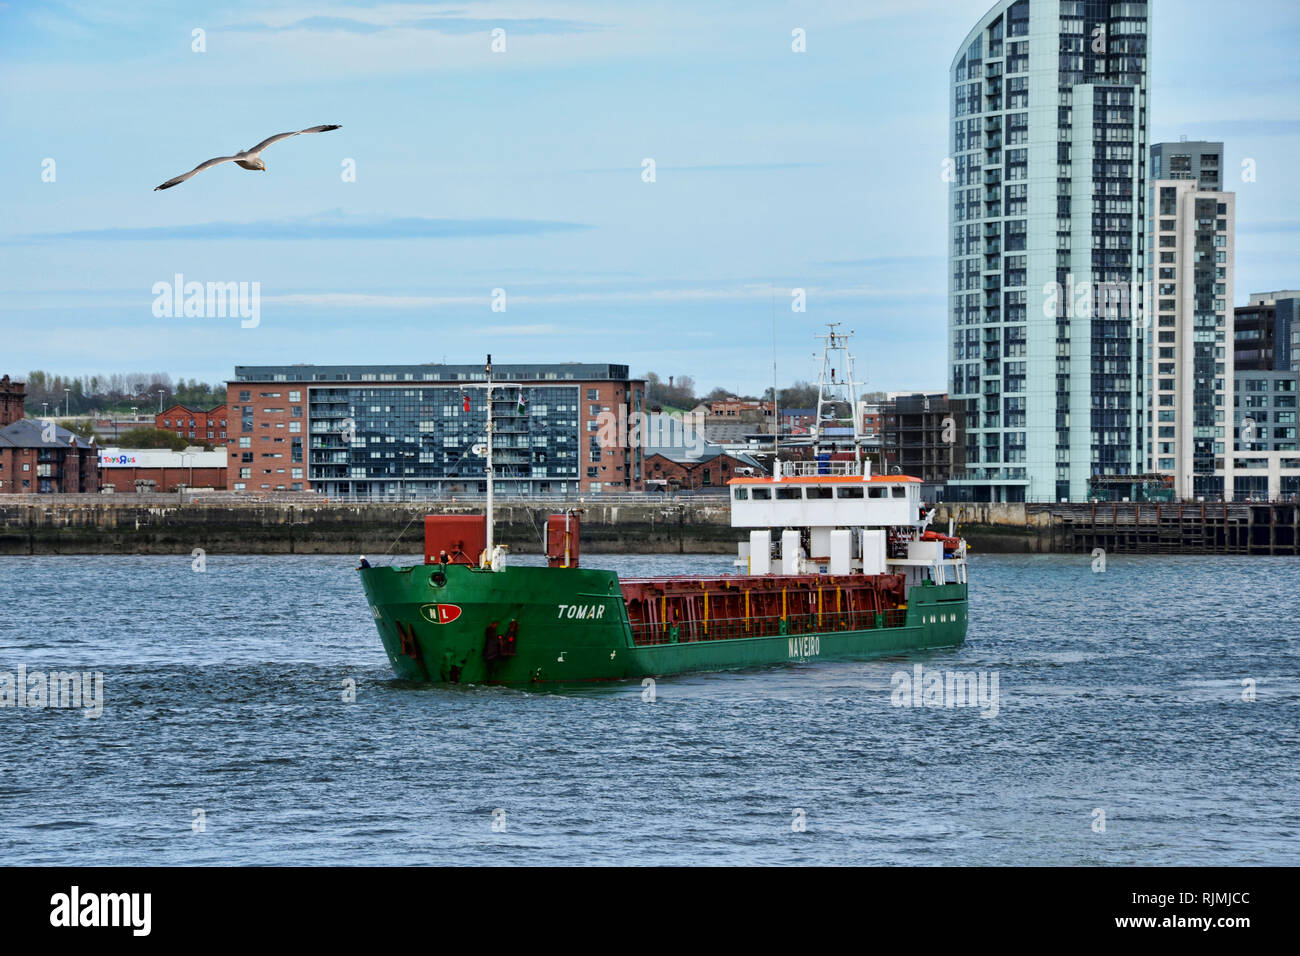 MS Tomar manoeuvres on the River Mersey - Stock Image